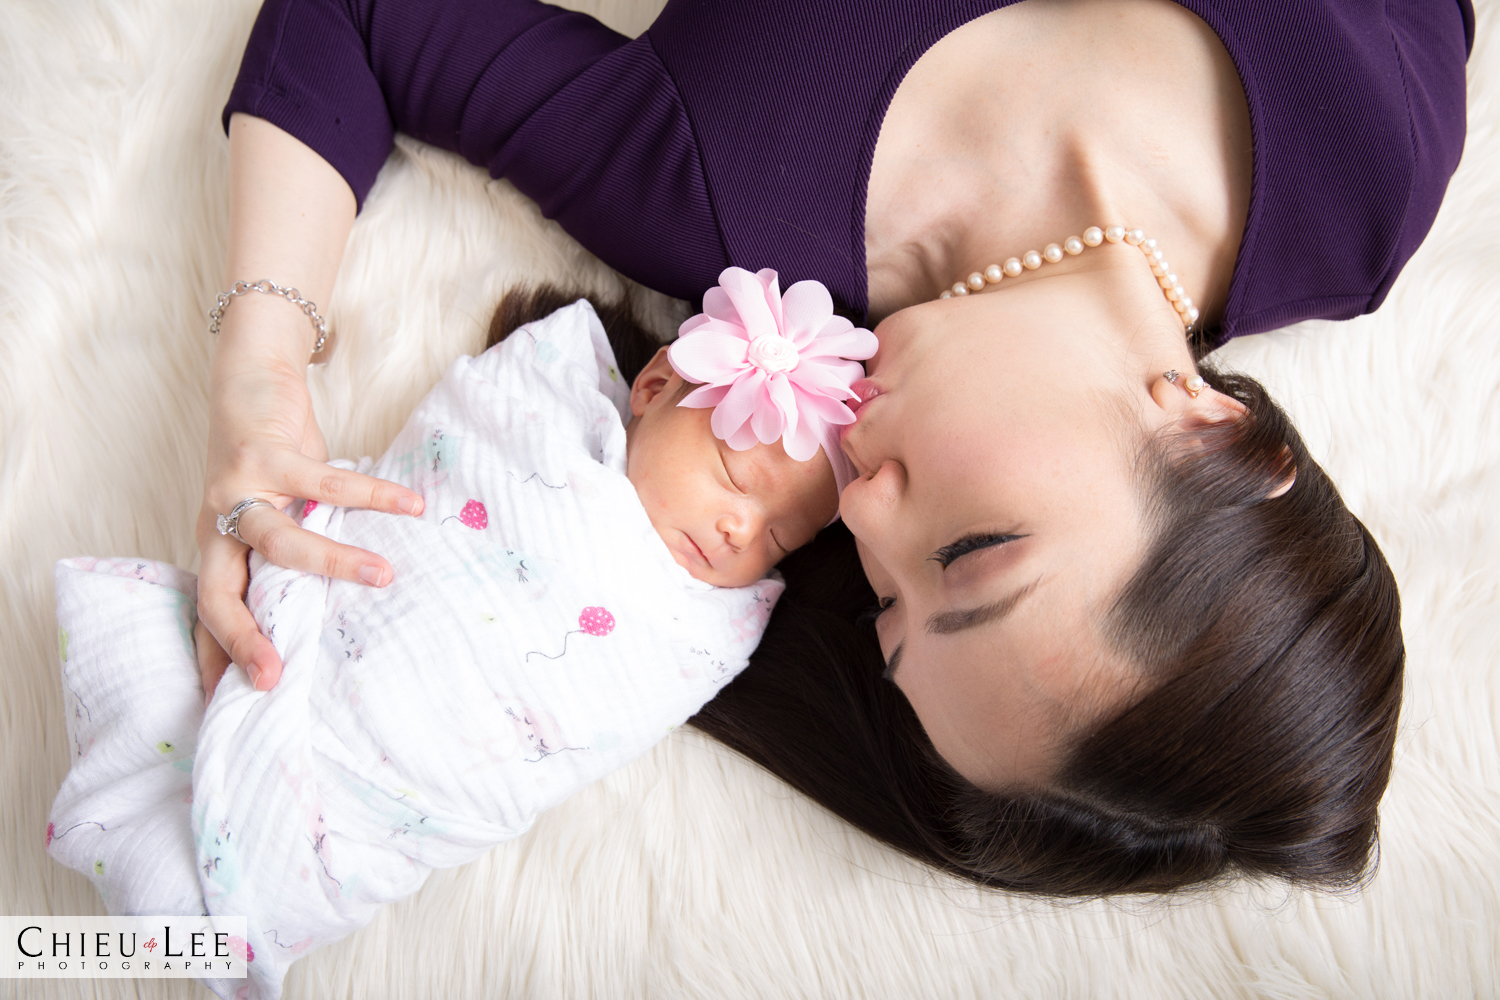 Mother mom and child newborn baby girl embrace forehead kiss closeup two shot pink flower headband and white wrap sleeping eyes closed purple blouse pearl necklace on ivory blanket